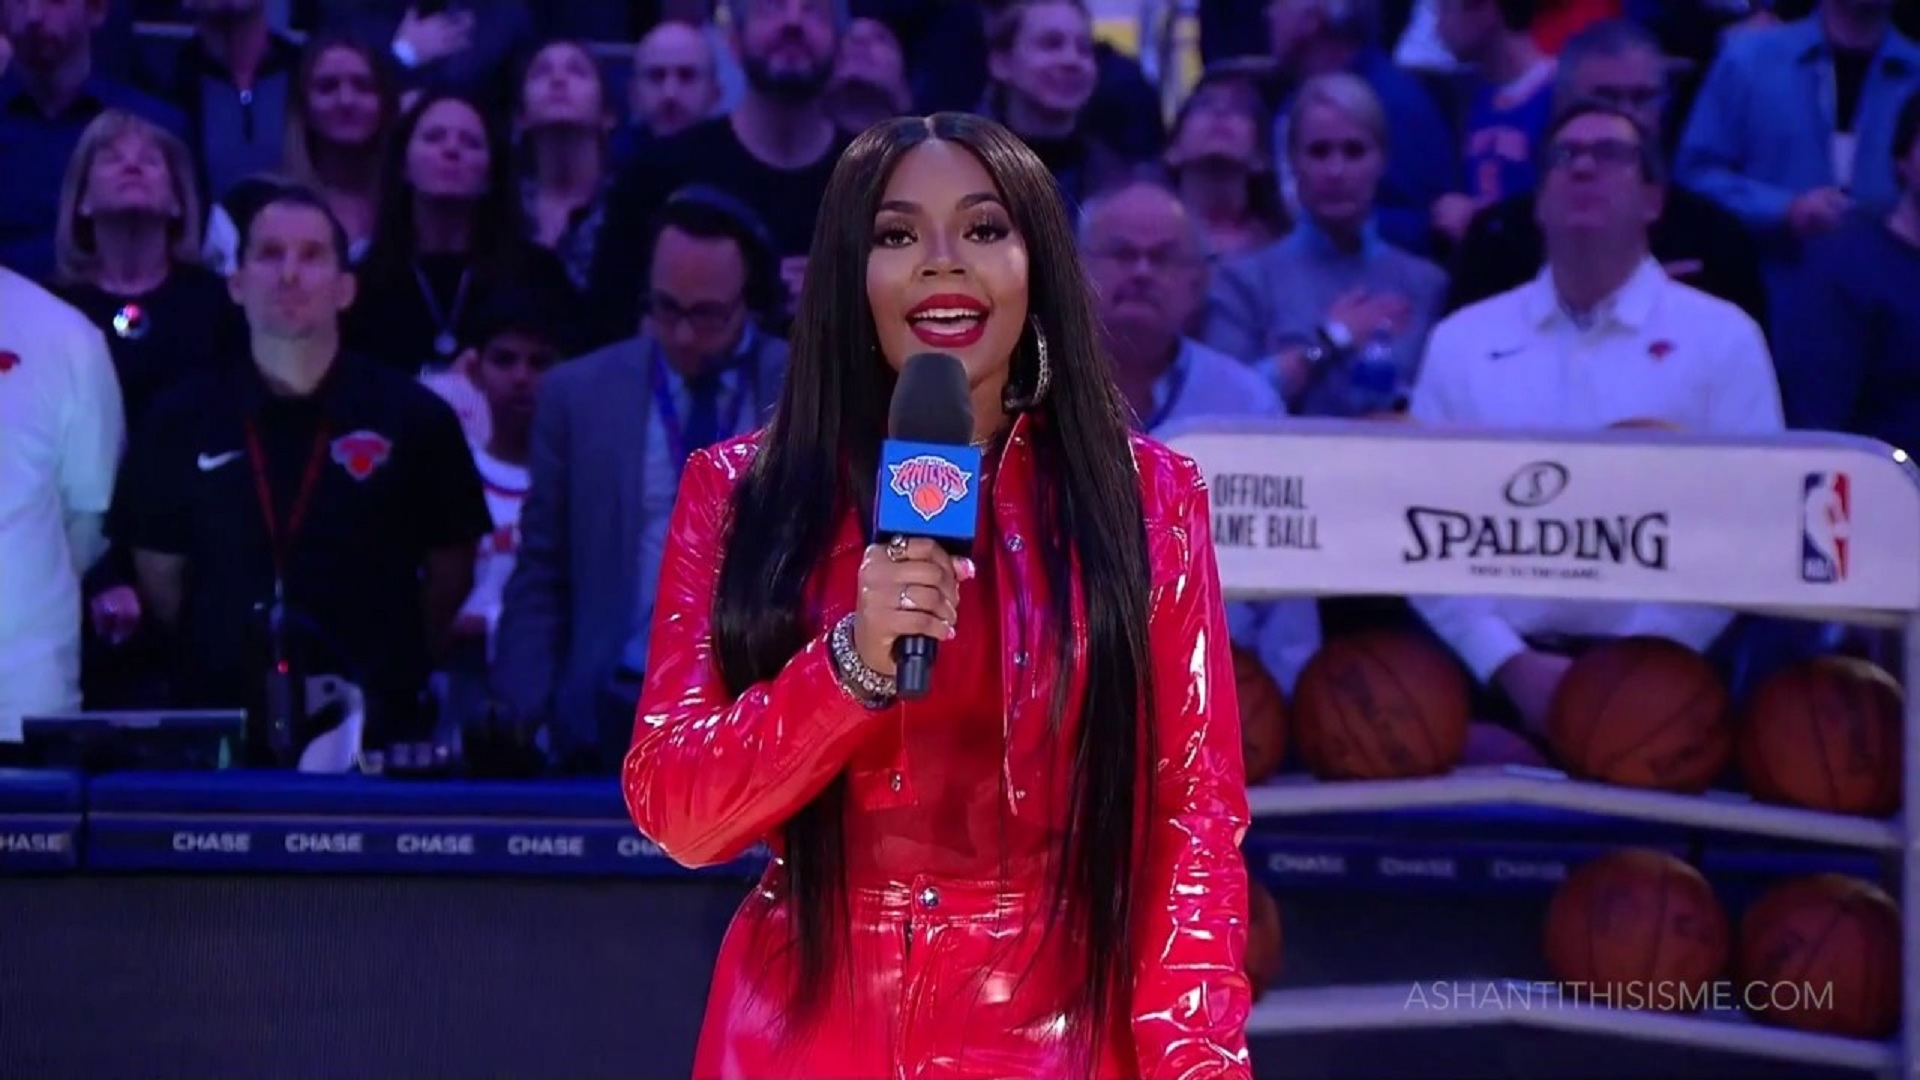 Watch: Ashanti Performs US National Anthem at NBA Game!